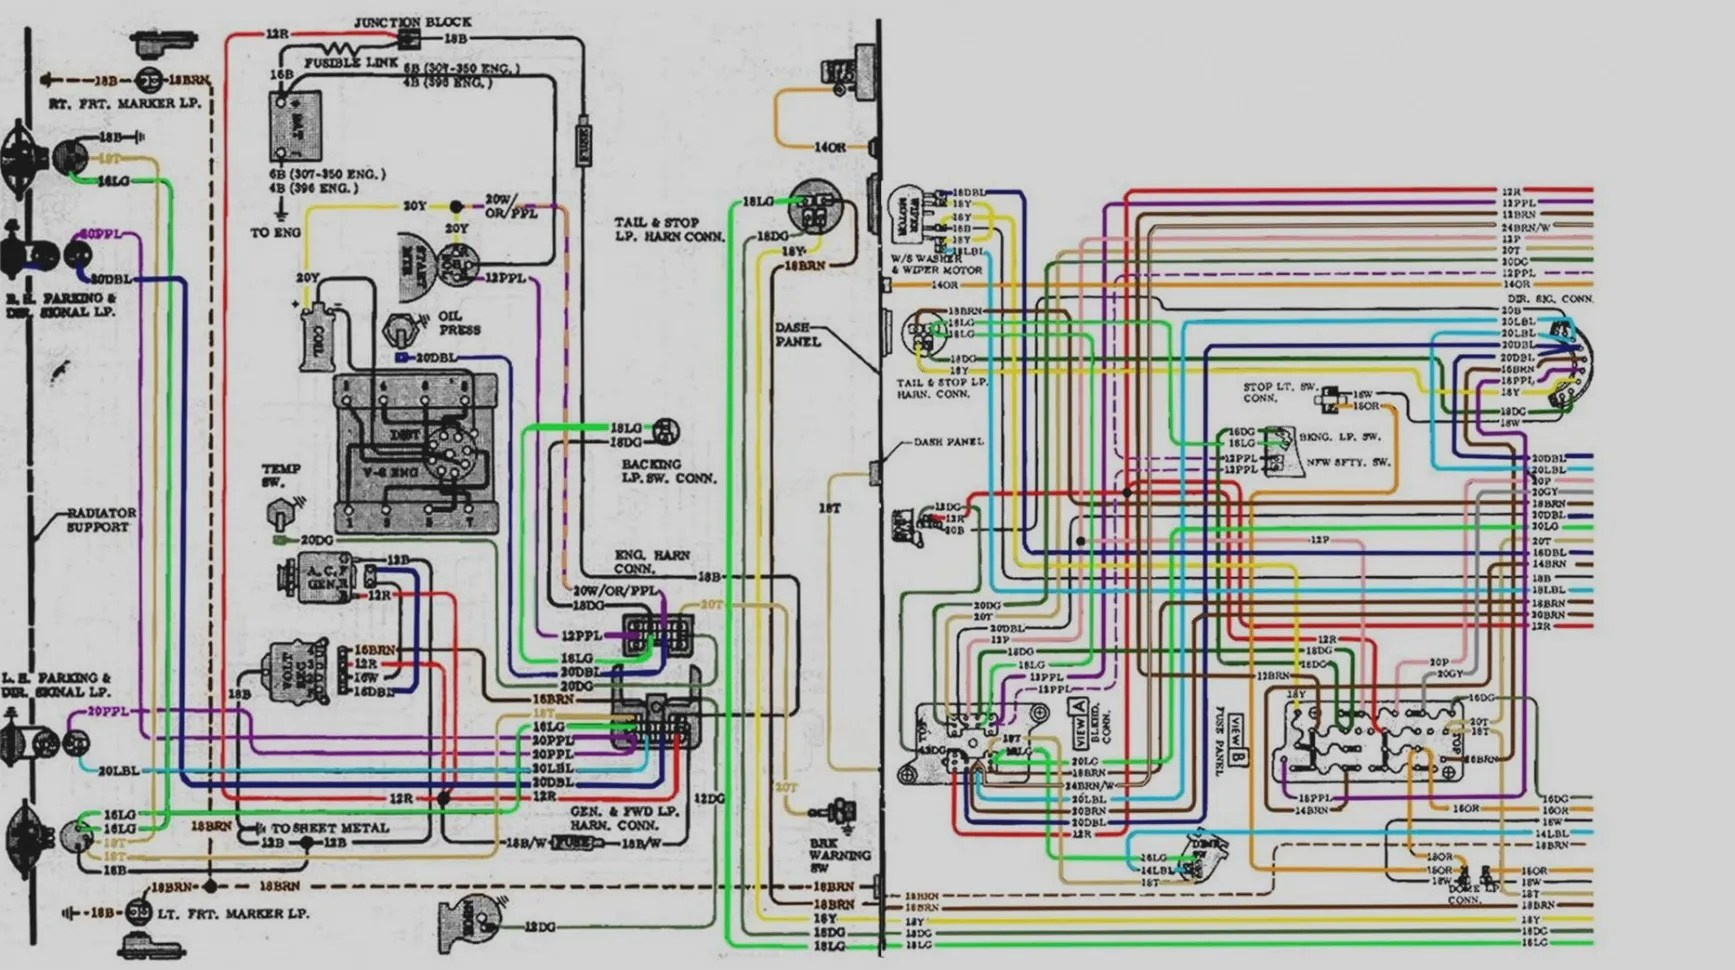 hight resolution of 1969 nova wiring harness wiring diagram world1969 nova wiring diagram wiring diagram 1969 nova wiring harness